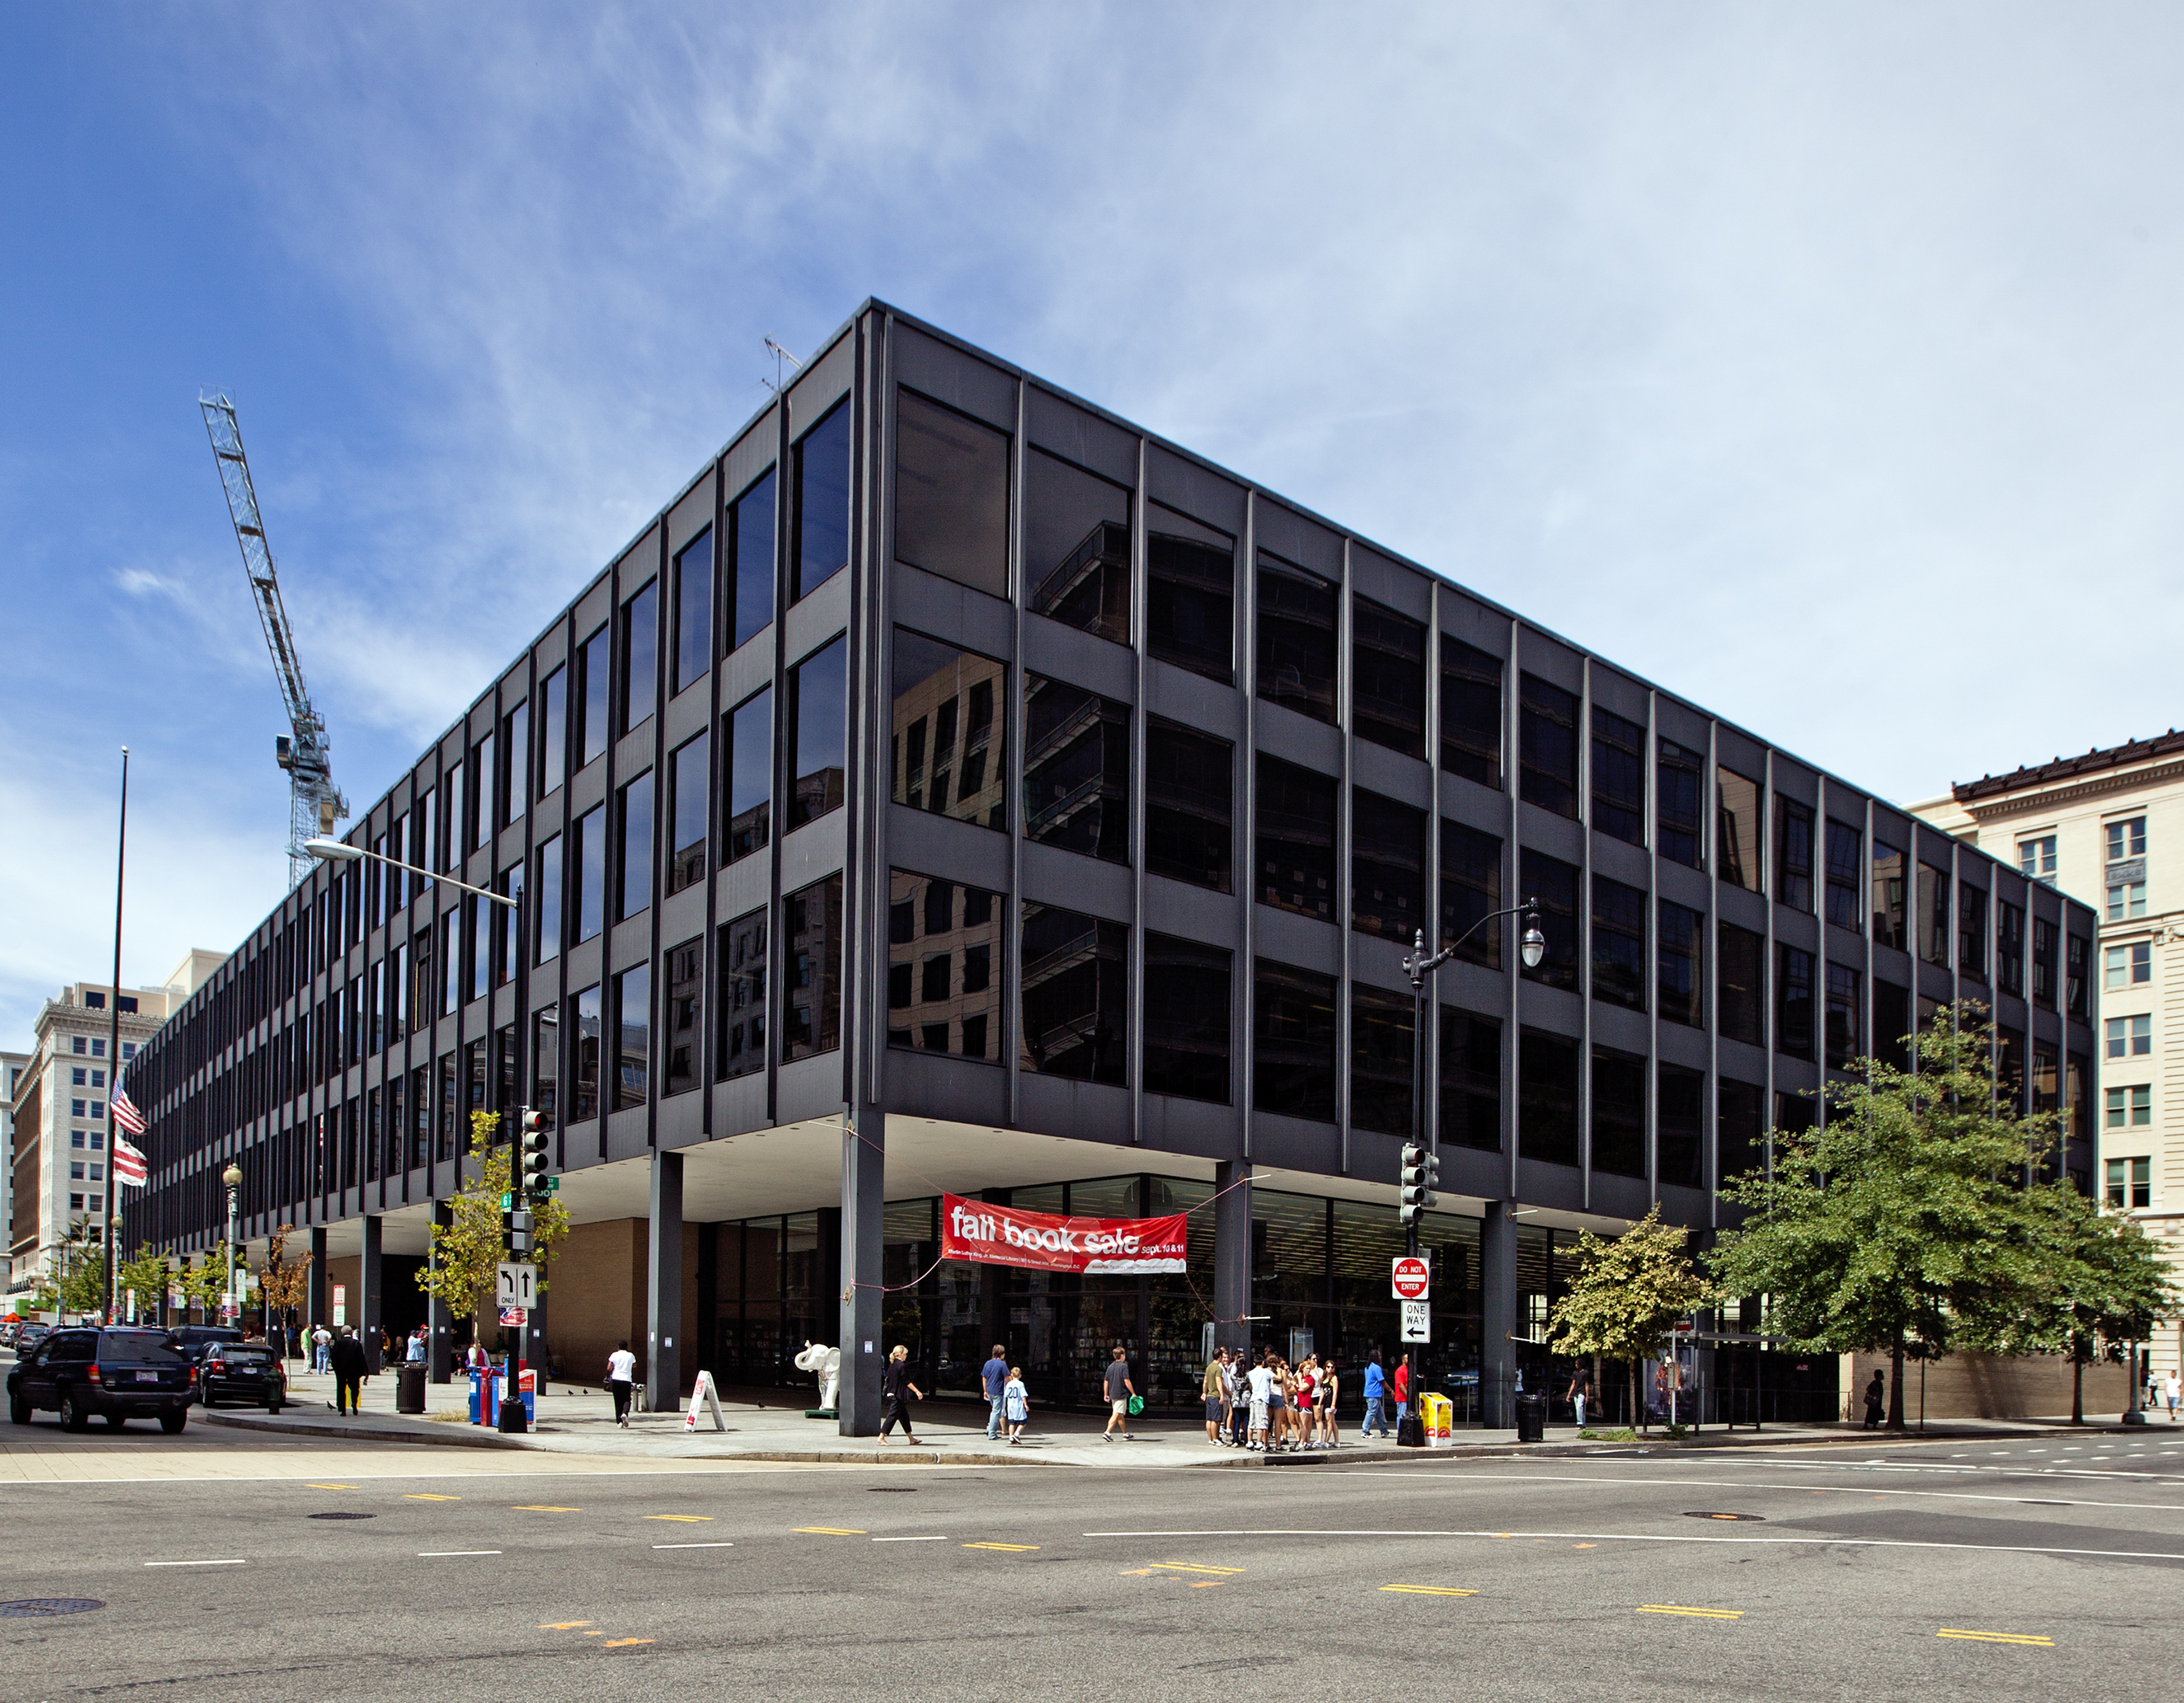 A modern library building on a city corner. The building is black and has large, occluded windows.